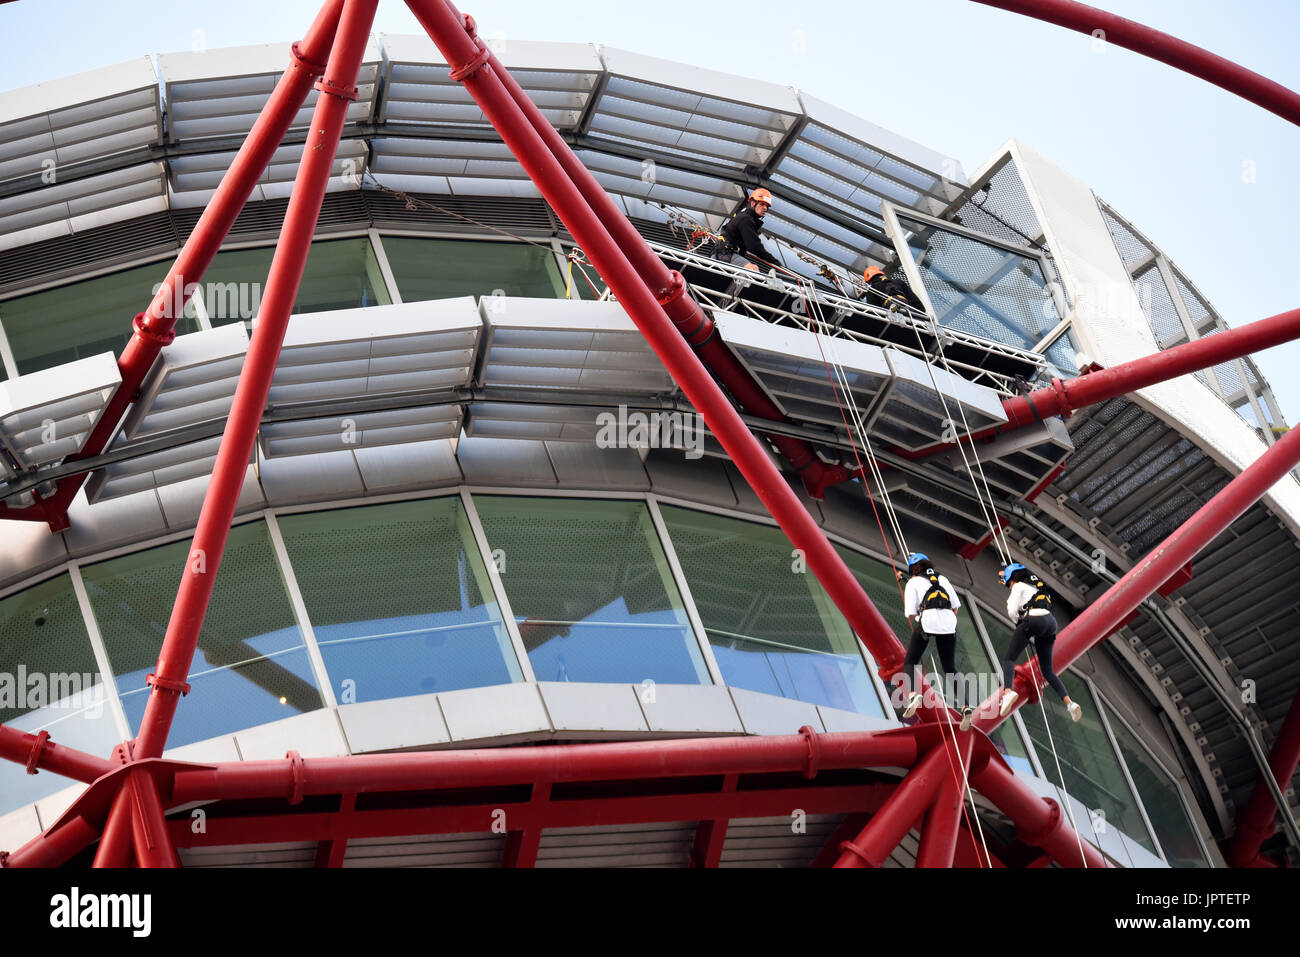 Abseiling from ArcelorMittal Orbit by Wire & Sky. Queen Elizabeth Olympic Park, Stratford, London, UK. Activity Stock Photo